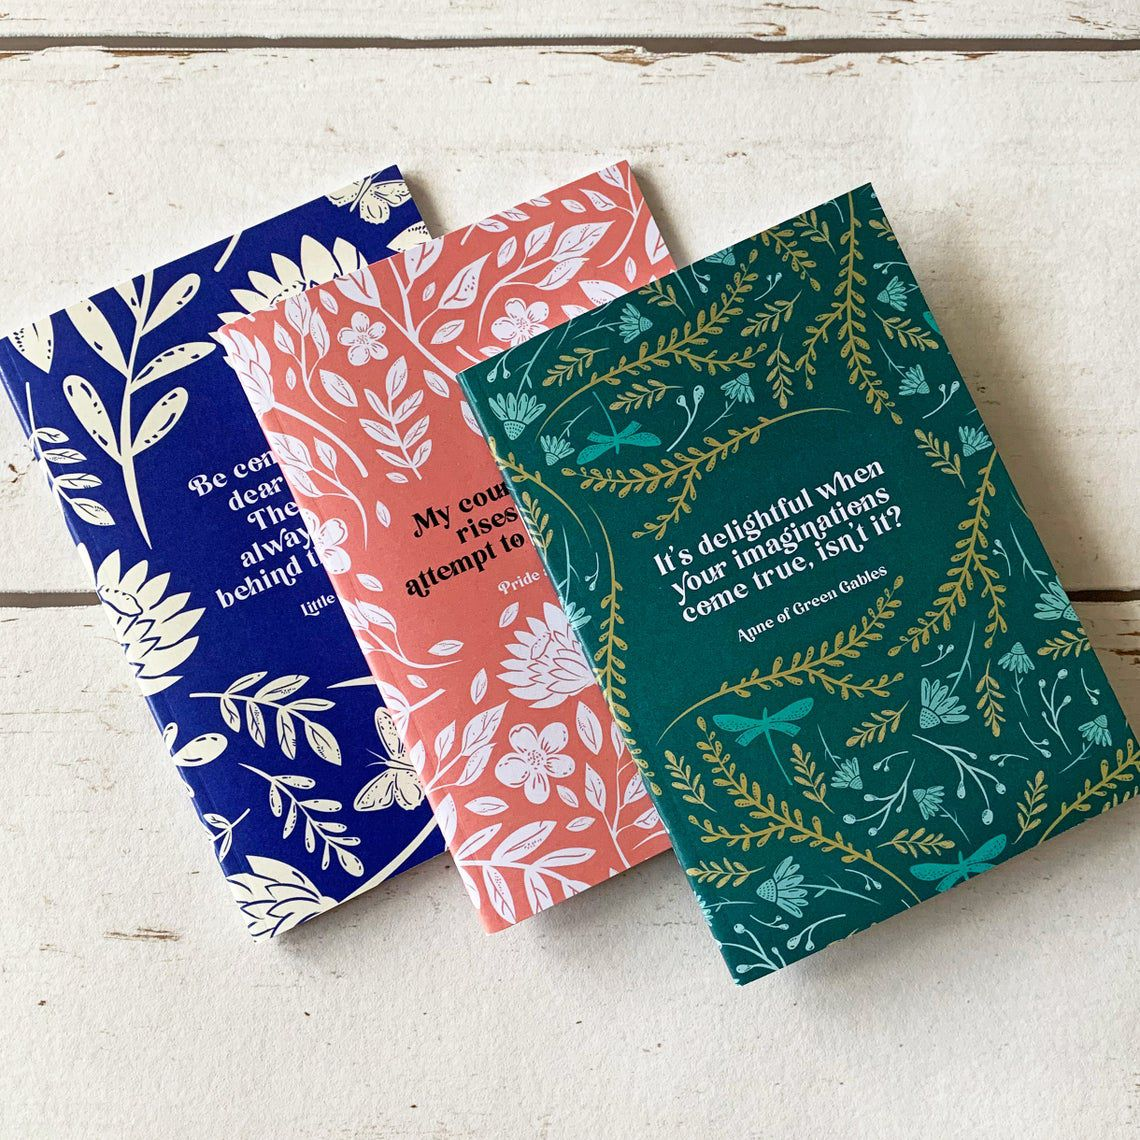 women of literature notebooks, colored blue, red, and green, with quotes from classic heroines